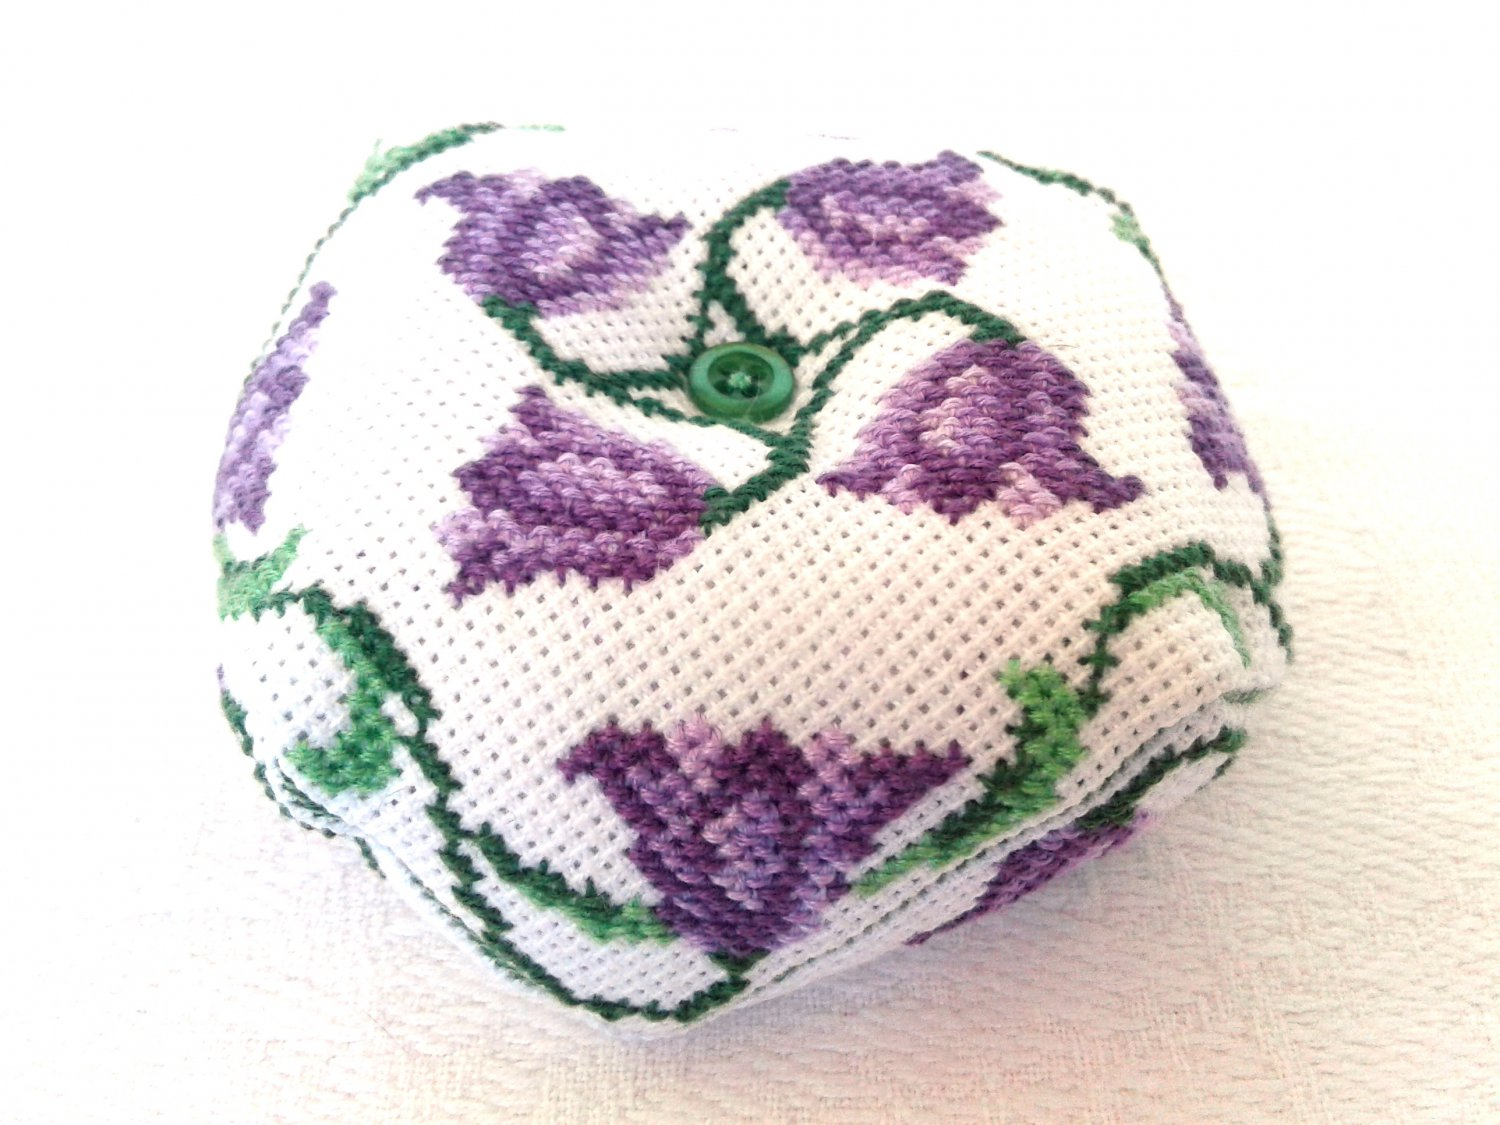 Biscornu, modern cross stitch, Pincushion, Handmade gift, Home decor, Embroidery, Interior decor